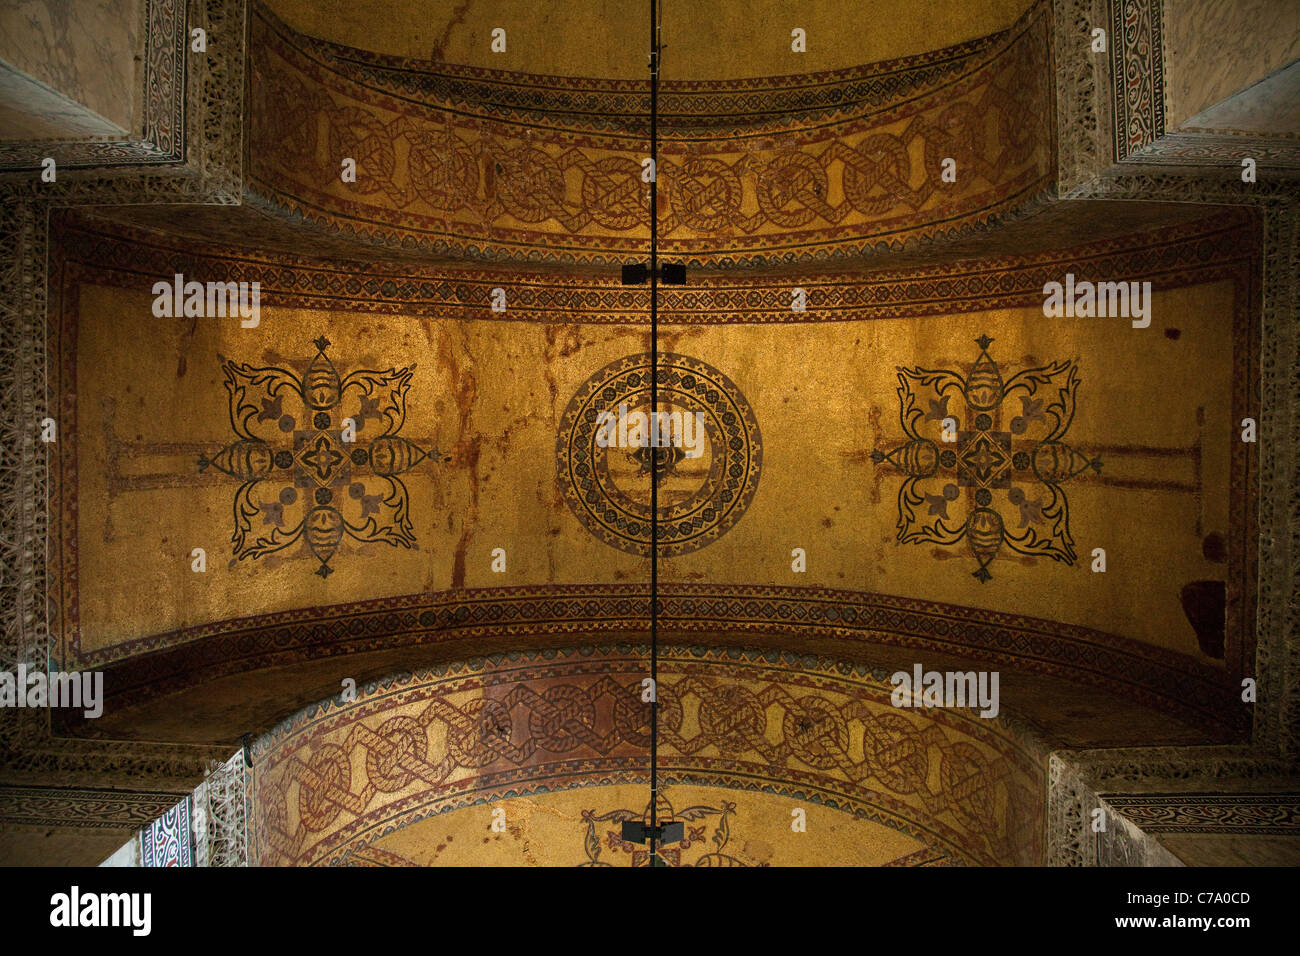 Barrel Vault with Cruciform And Star Icons on Gold at Hagia Sophia; Istanbul, Turkey - Stock Image